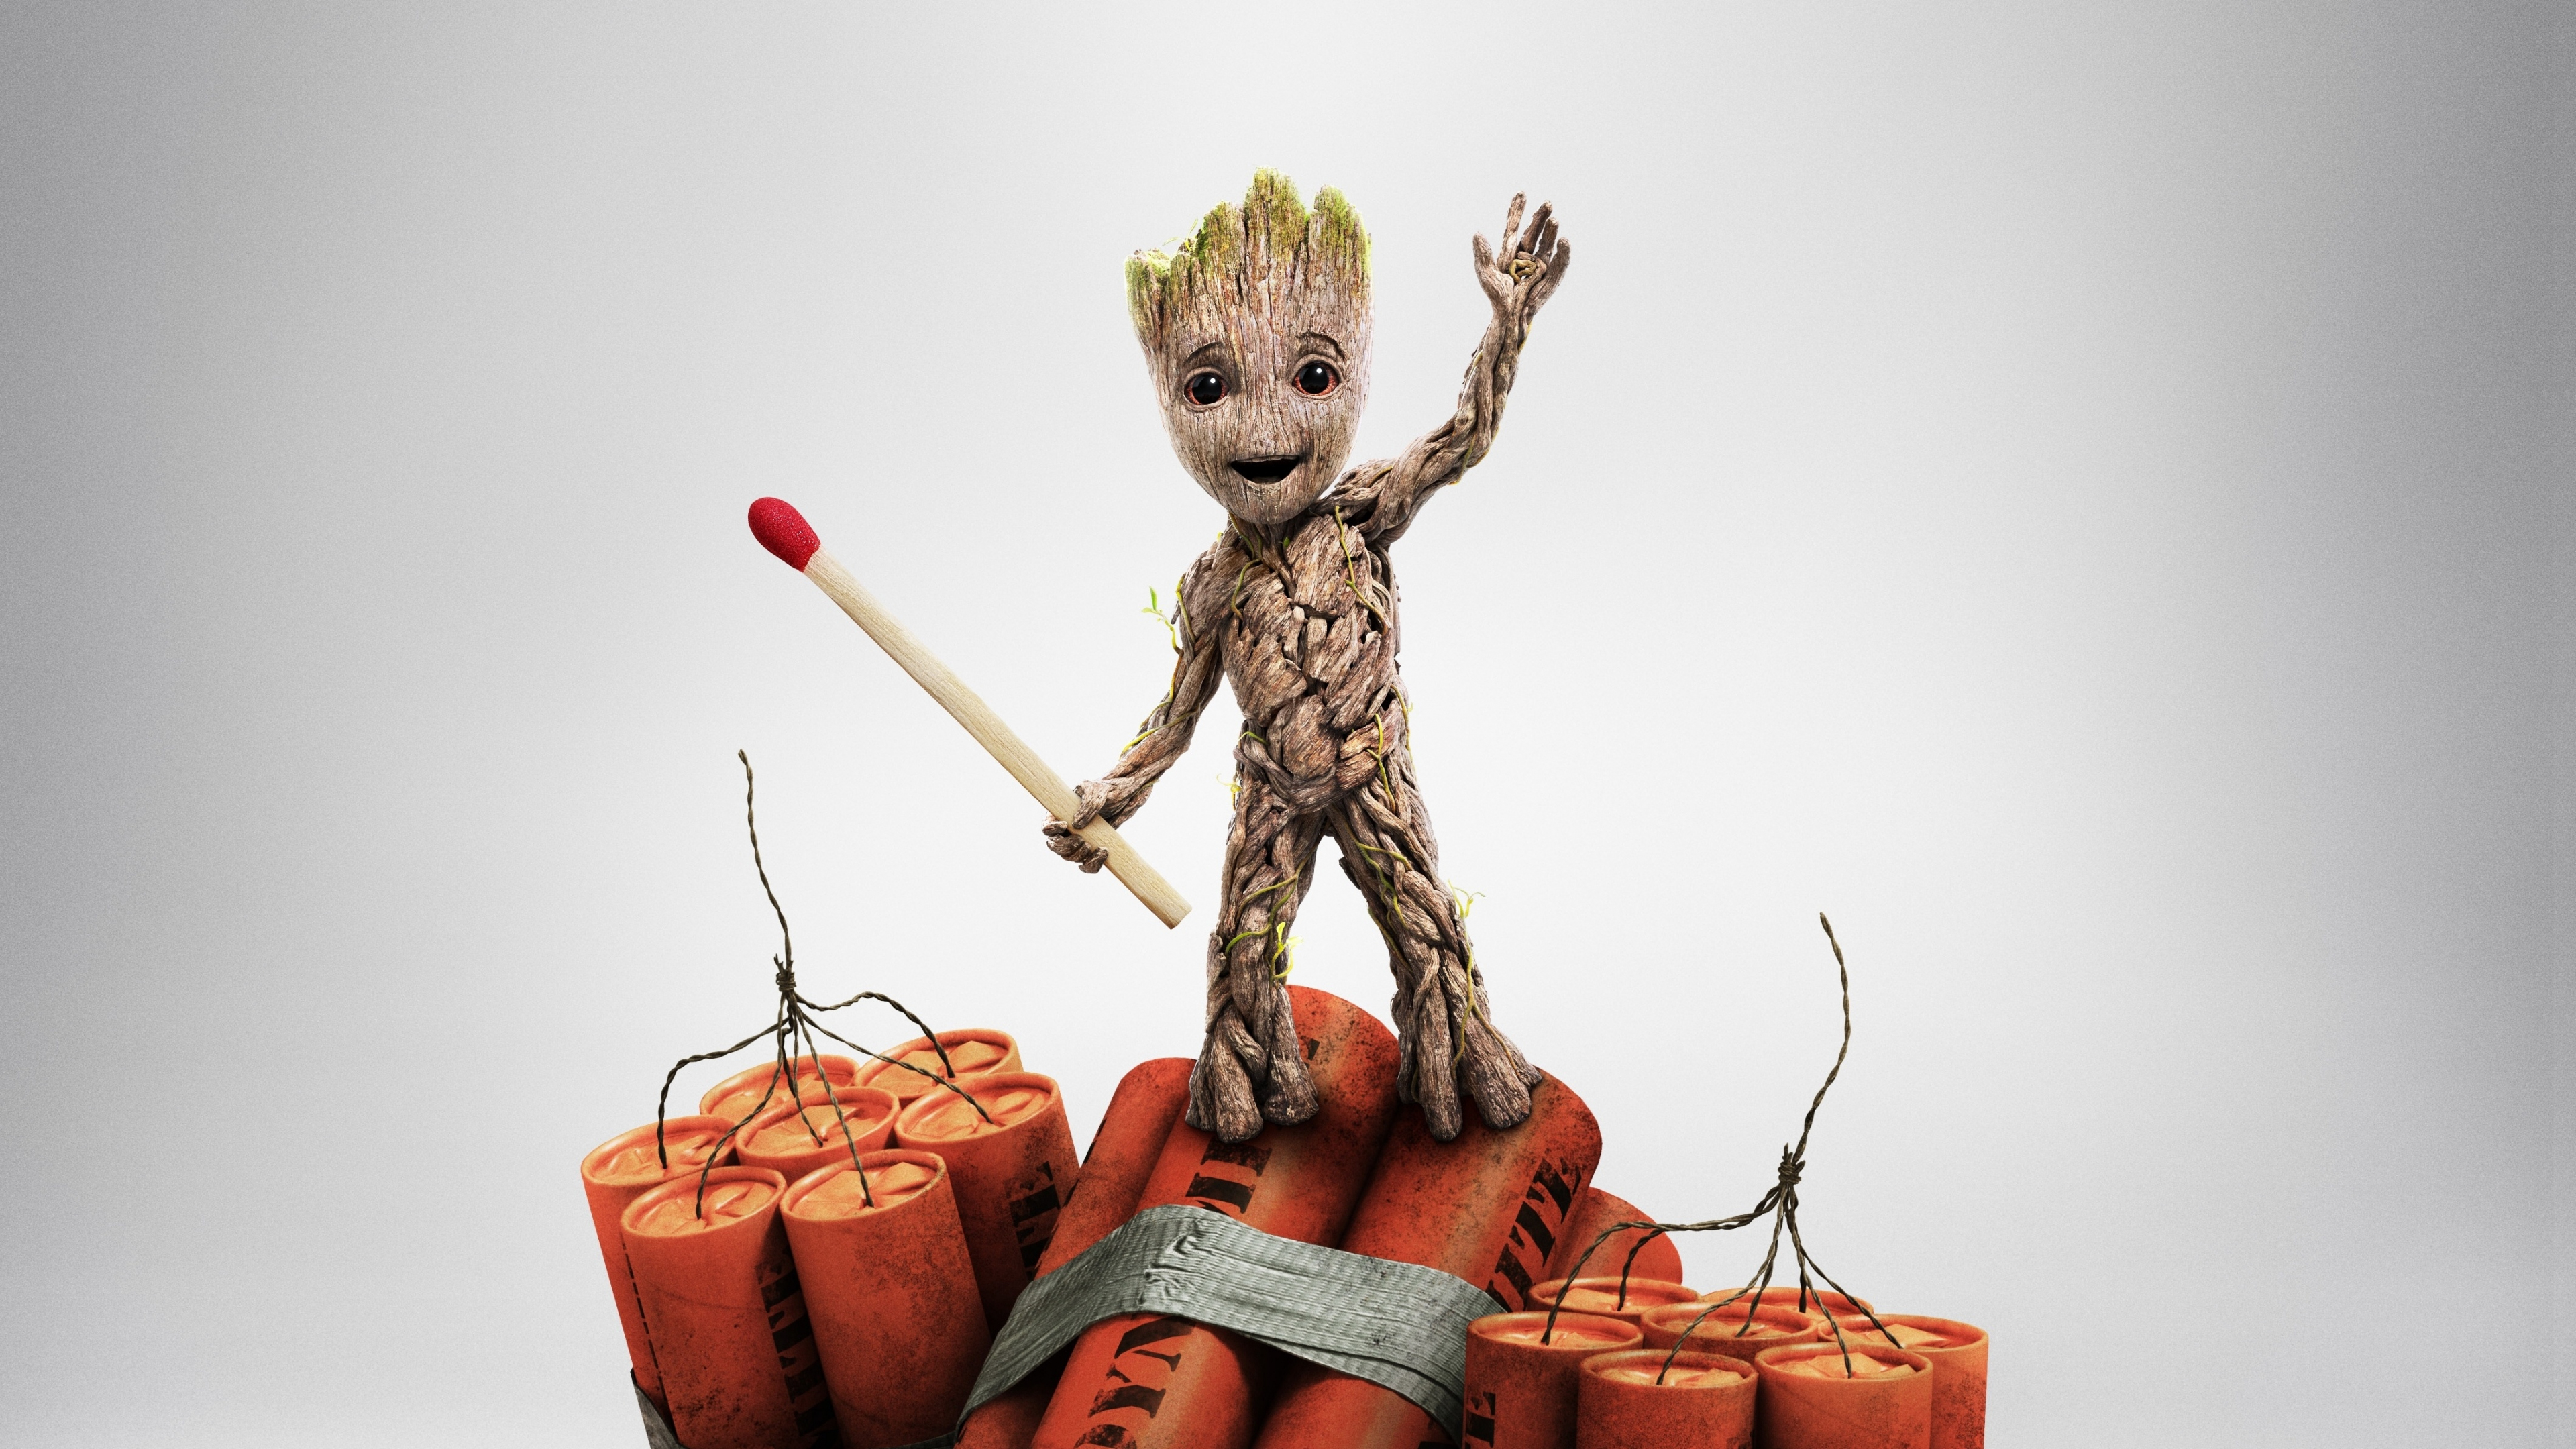 Download 3840x2160 Wallpaper Baby Groot Guardians Of The Galaxy Vol 2 Movie China Poster 4k Uhd 16 9 Widescreen 3840x2160 Hd Image Background 16899